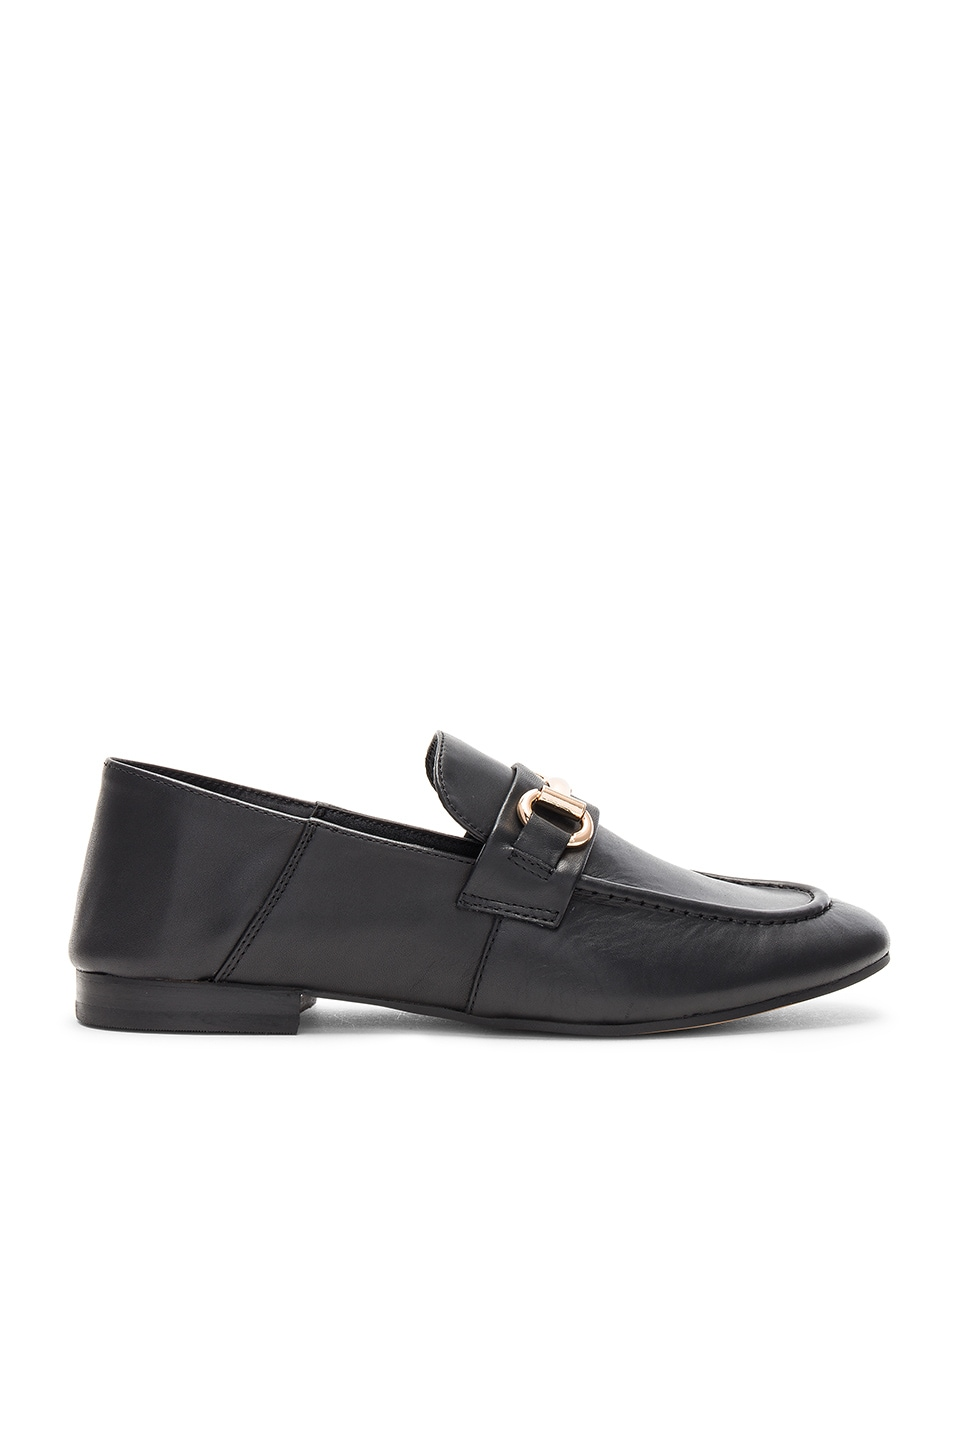 Santana Loafer by Steven